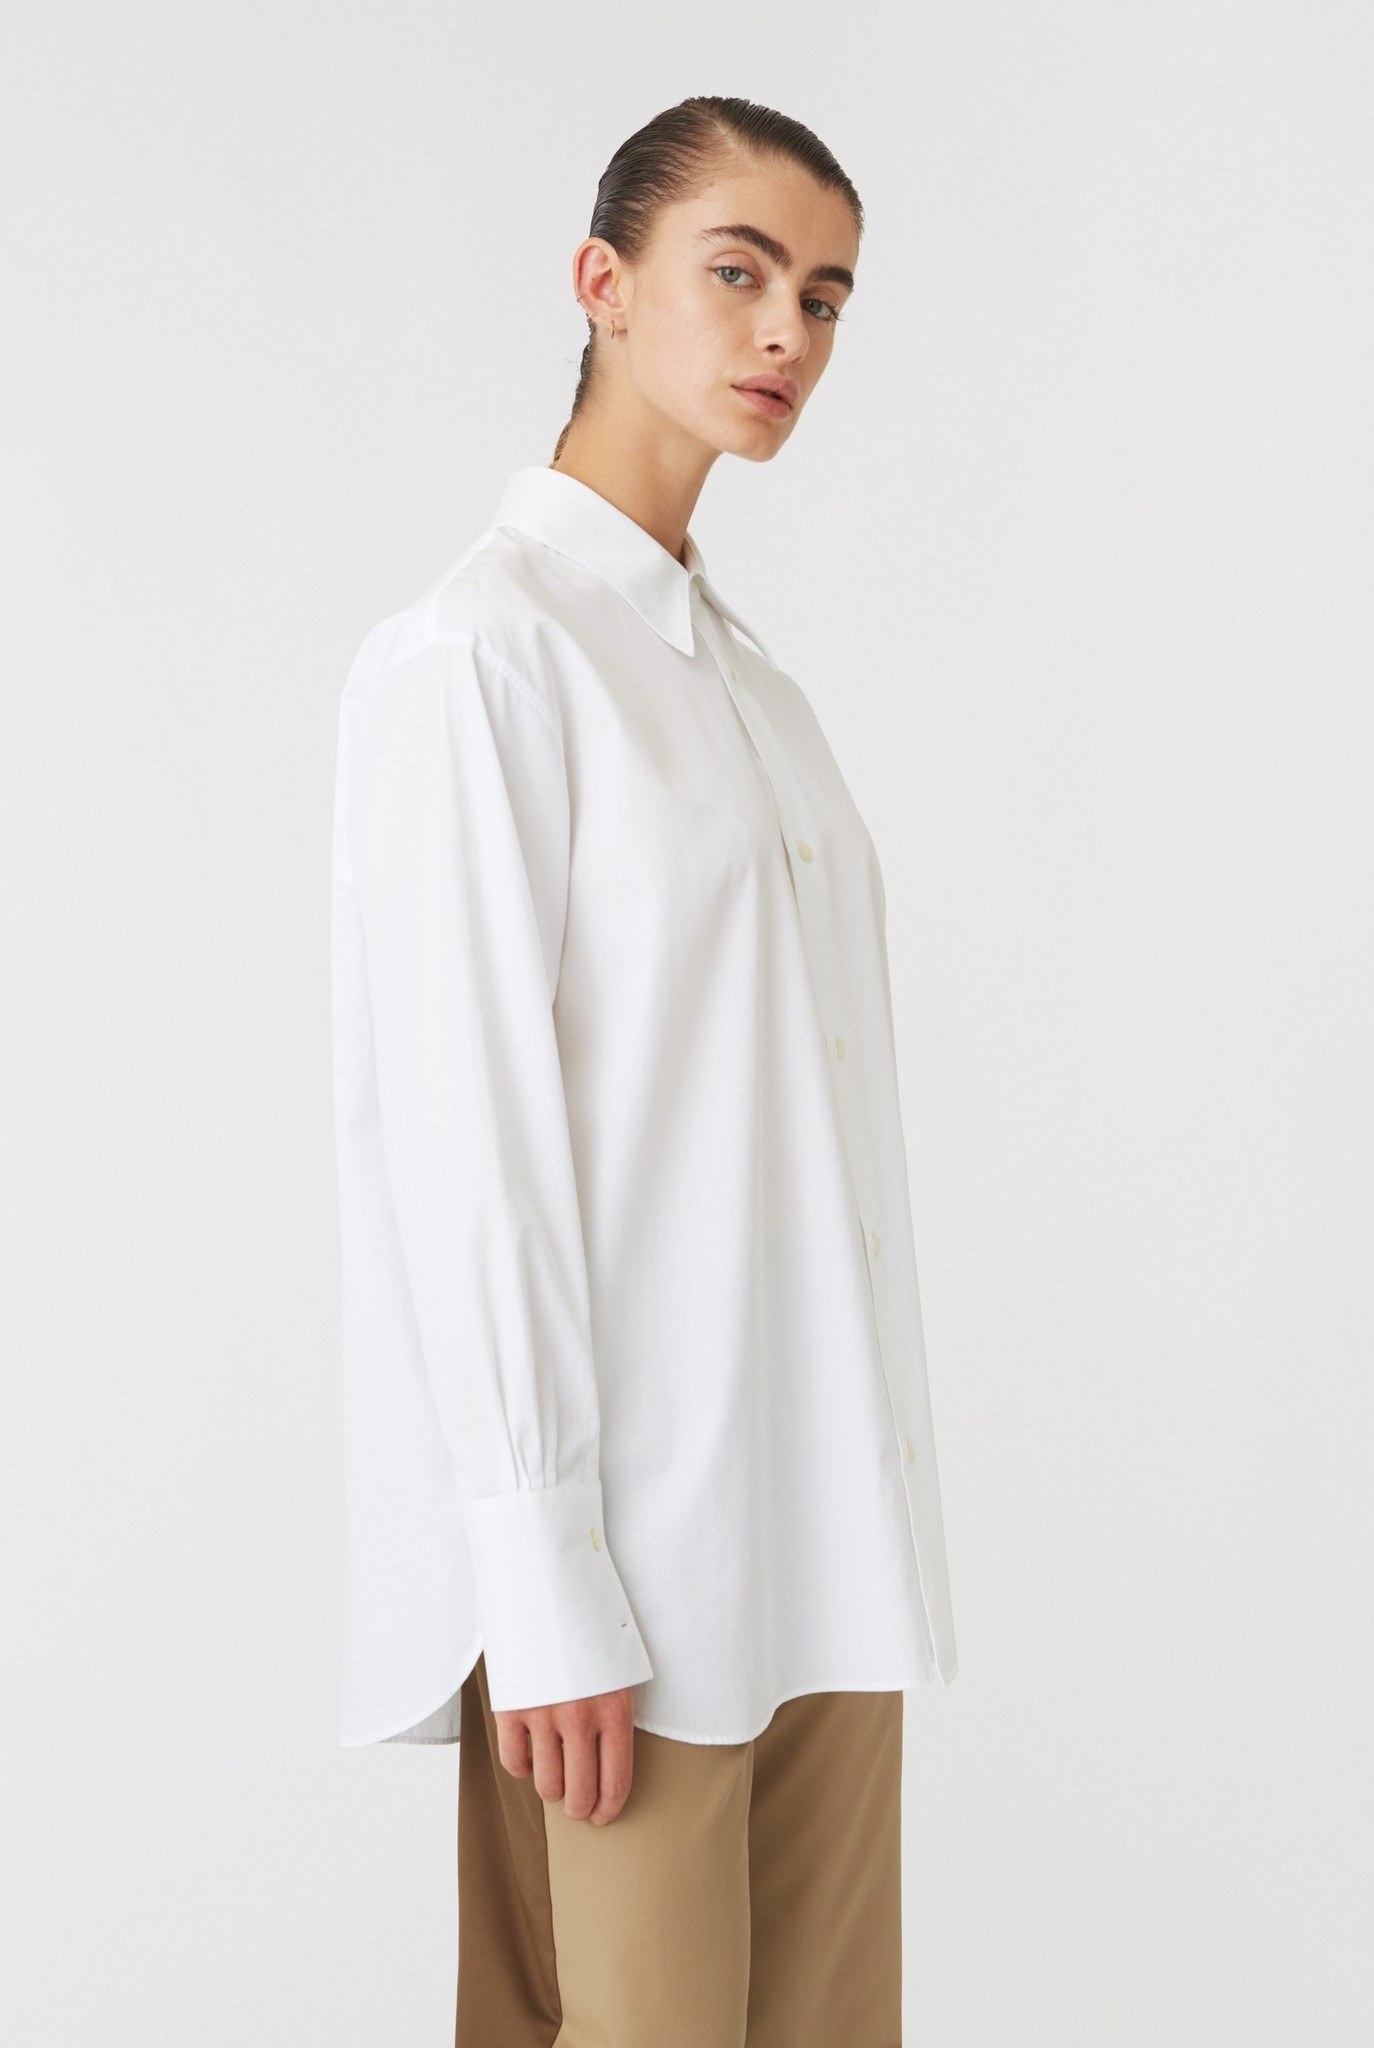 Mantra Shirt White